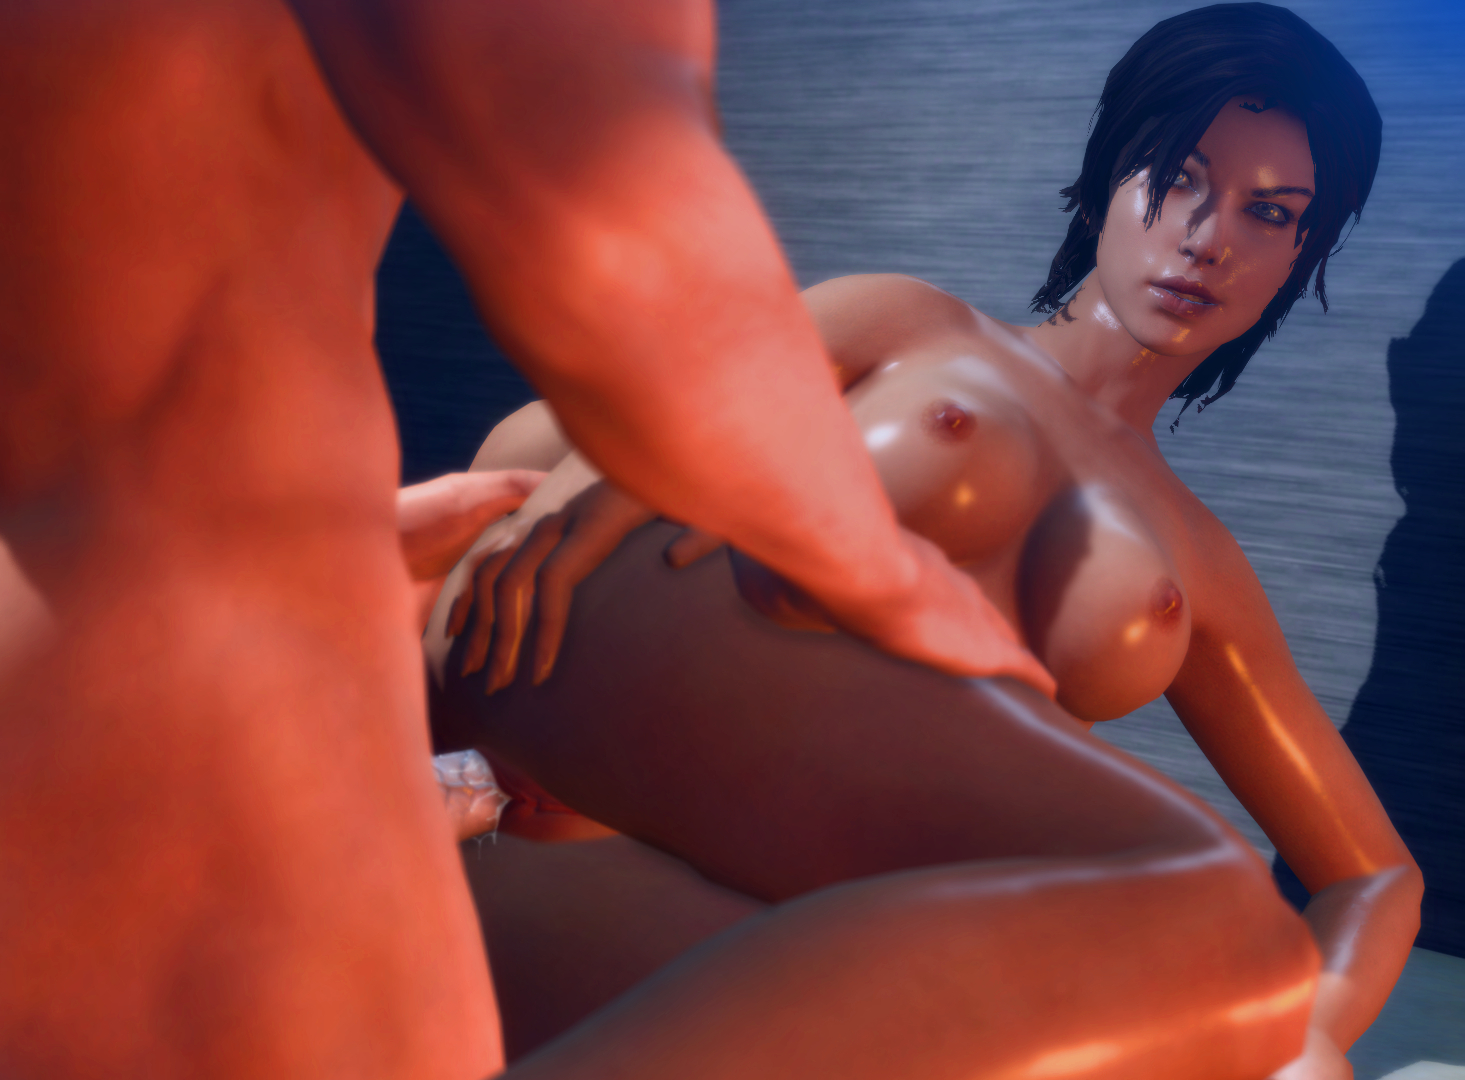 Lara croft solo sex gifs anime picture